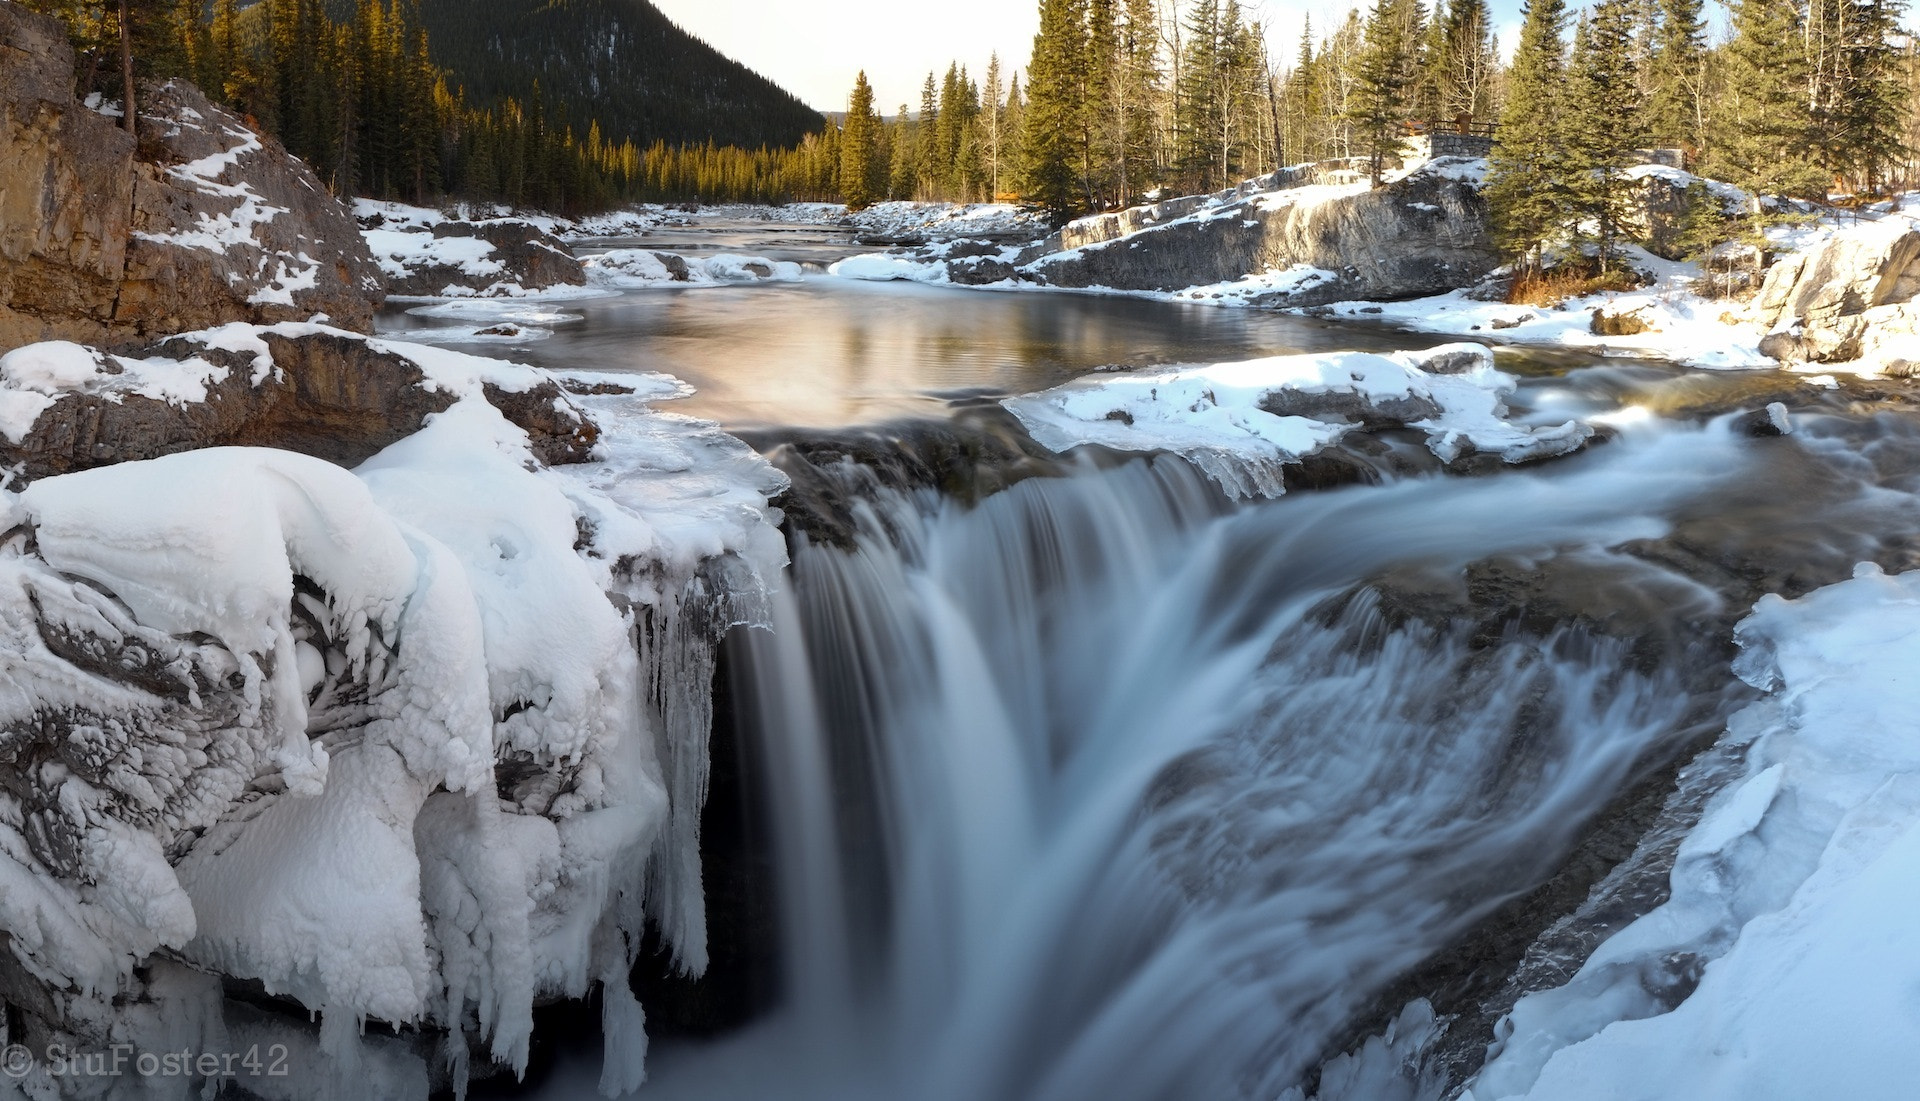 Photograph Elbow Falls Panorama by Stuart Foster on 500px